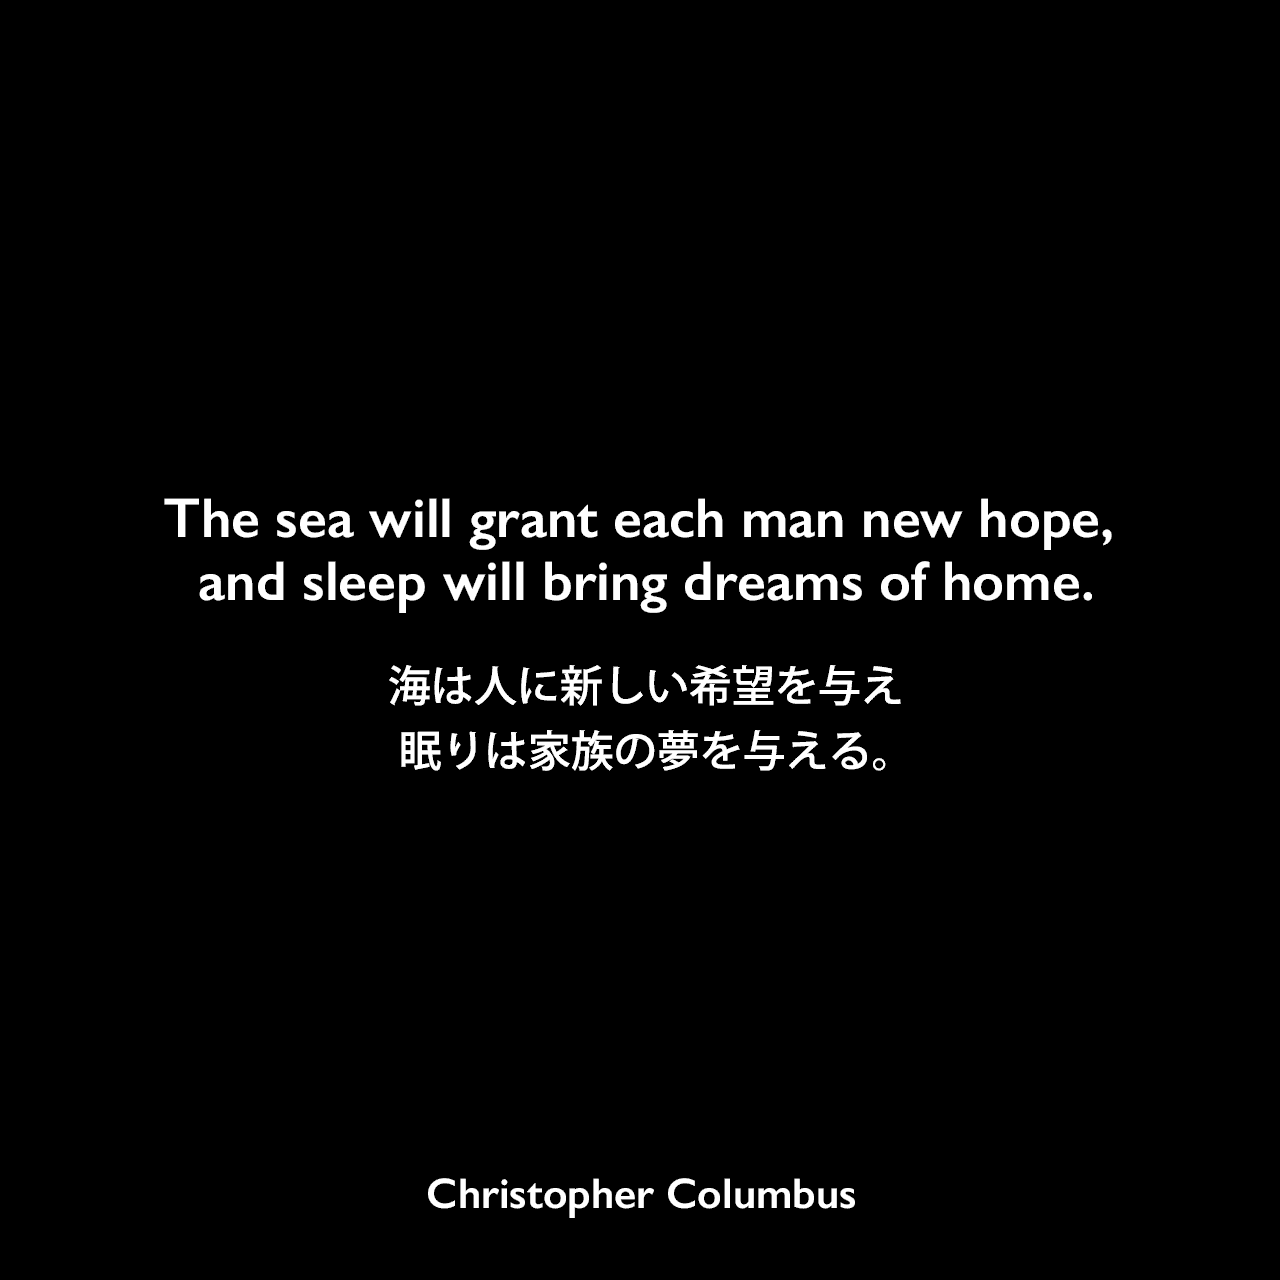 The sea will grant each man new hope, and sleep will bring dreams of home.海は人に新しい希望を与え、眠りは家族の夢を与える。Christopher Columbus